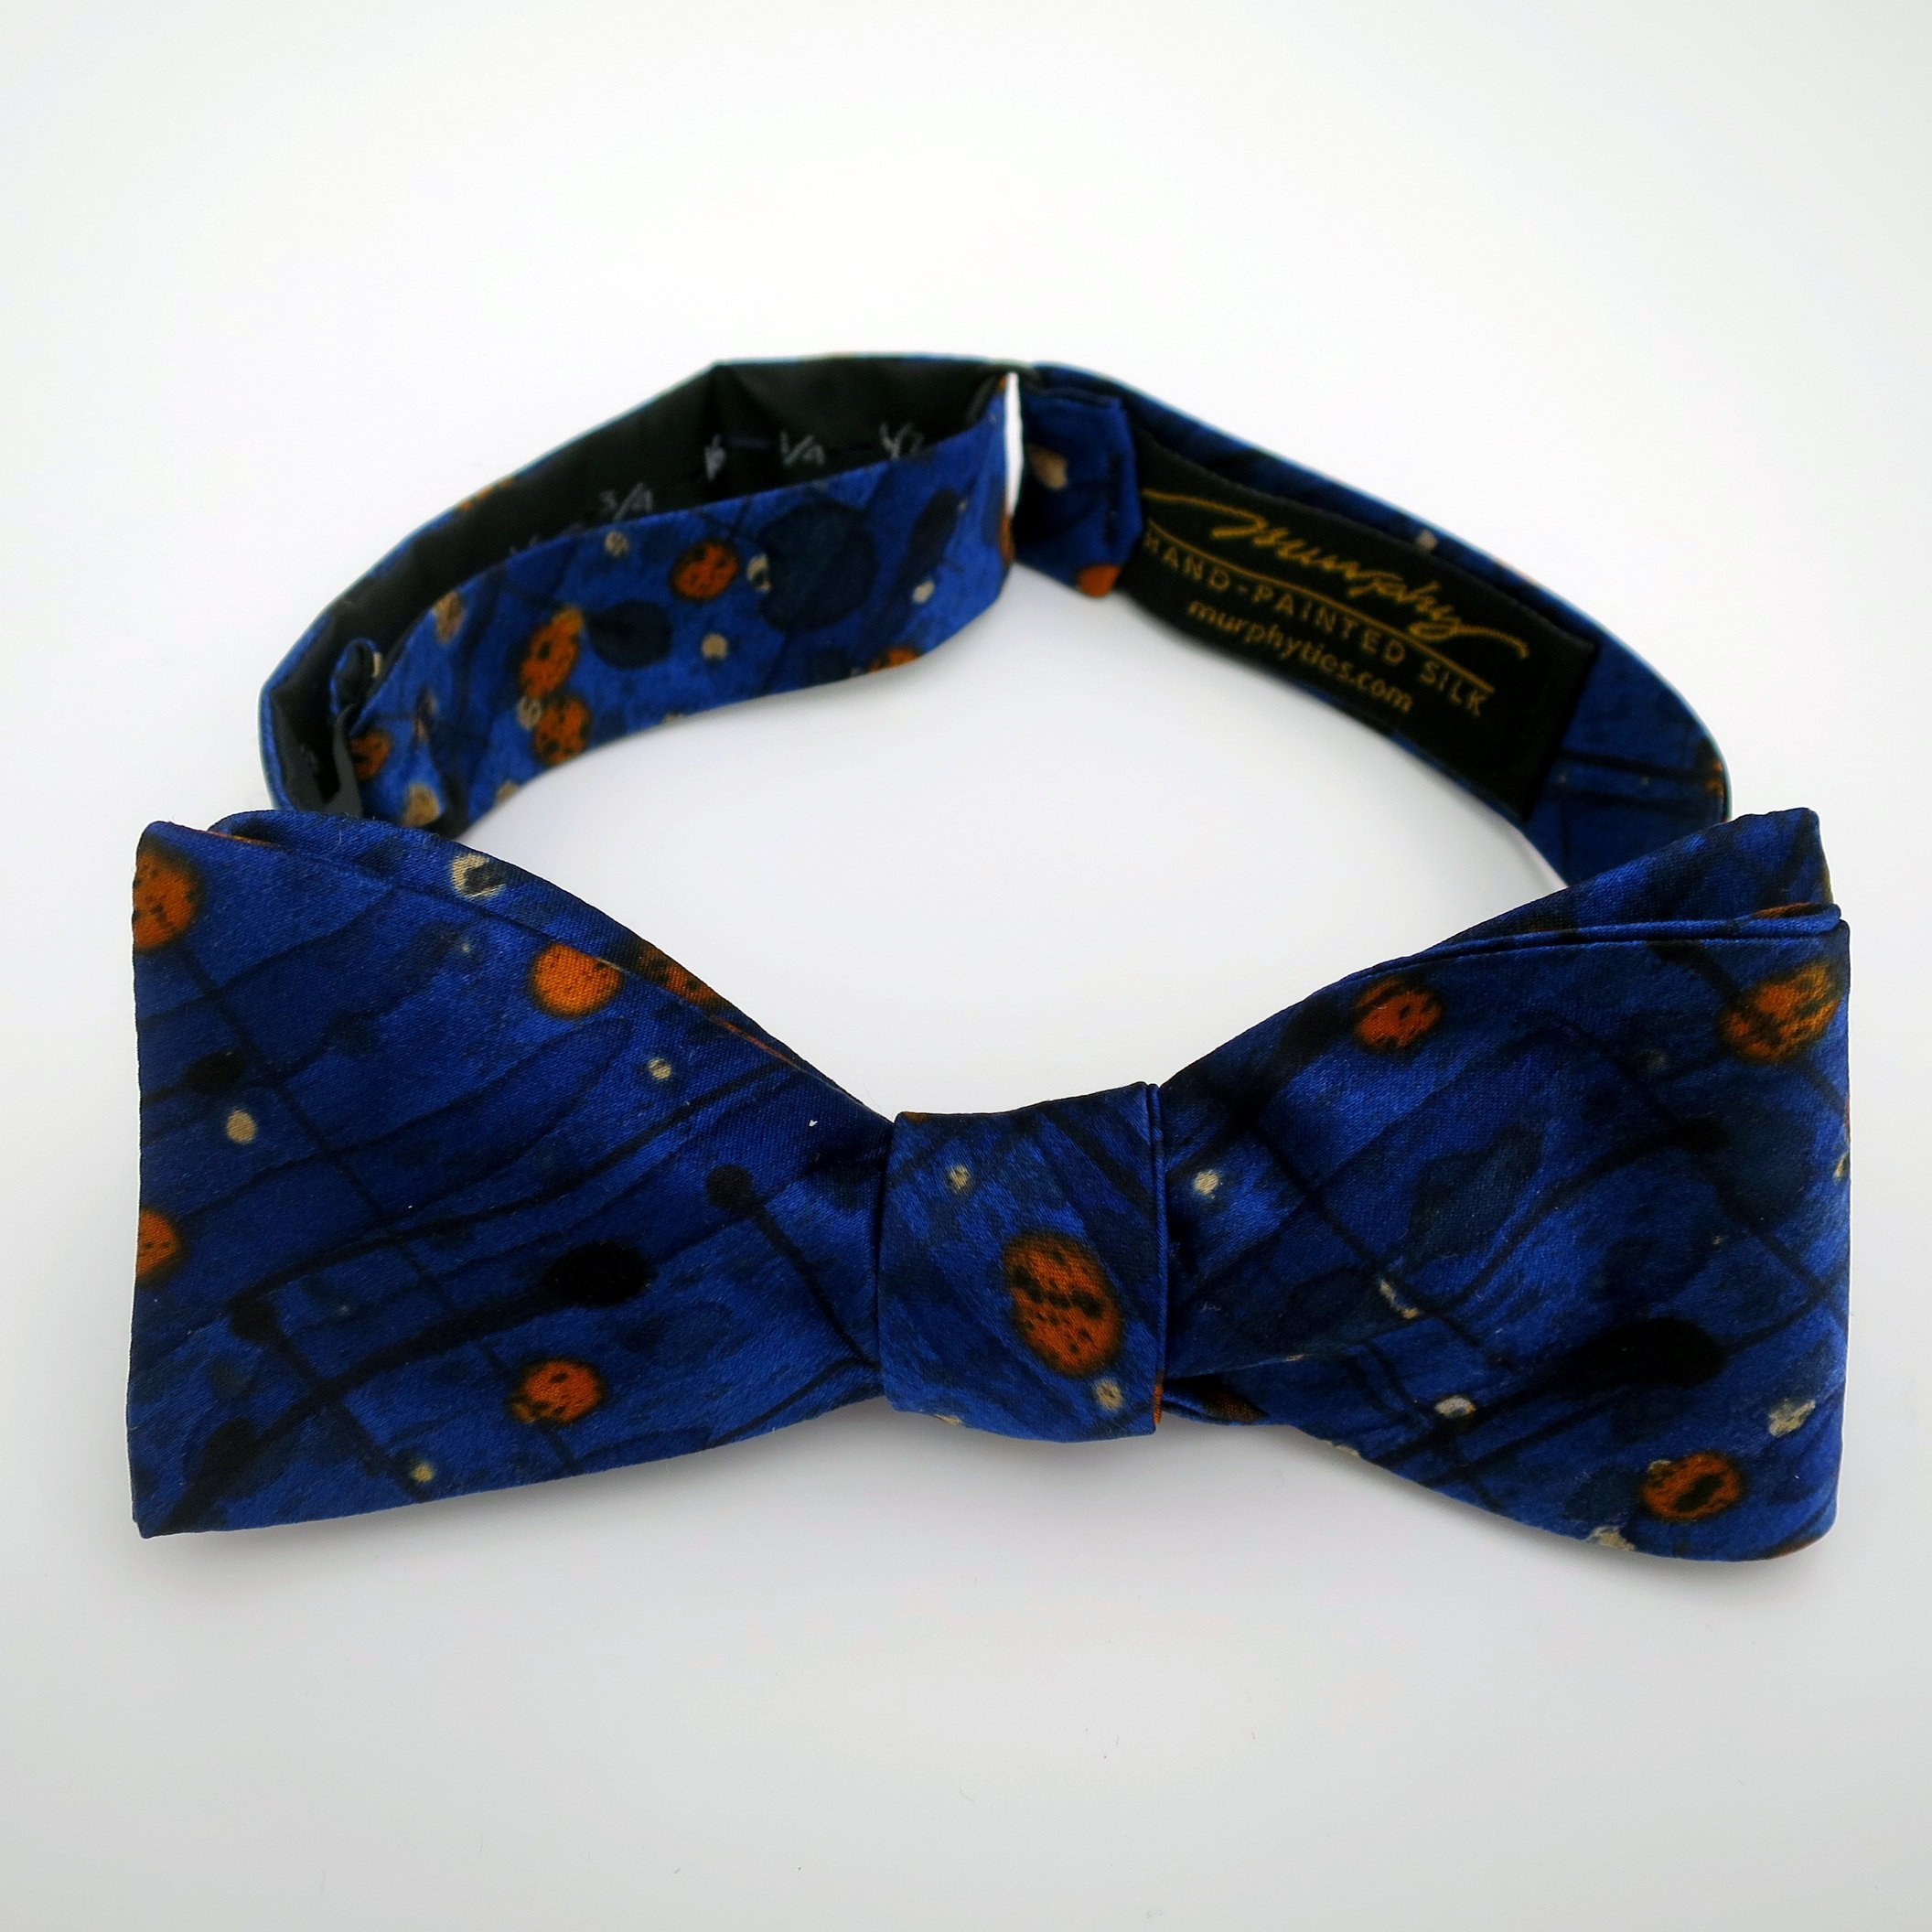 100% Silk Hand-Painted Hand-Made Men's Self Tie Bow Tie ''Rockslide'' Art to Wear by Murphyties by Murphyties Inc.